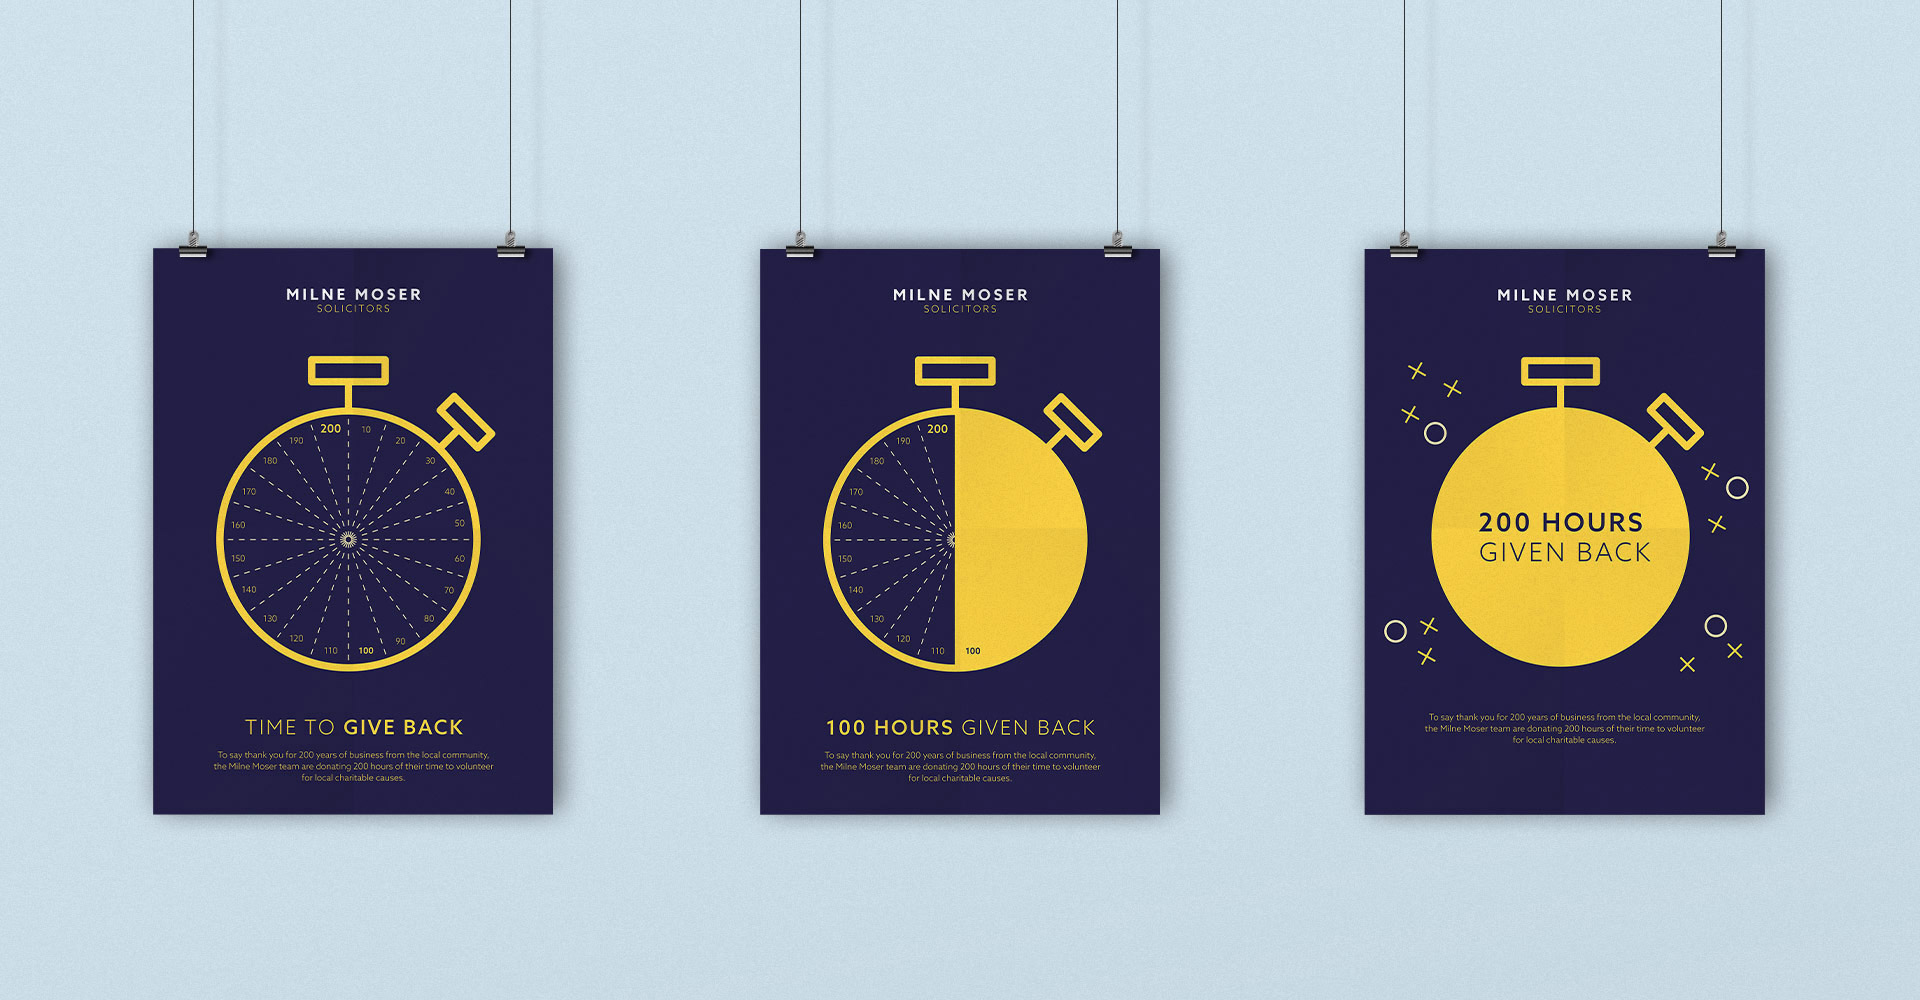 Milne Moser Internal Comms 200 Hours Charity Posters